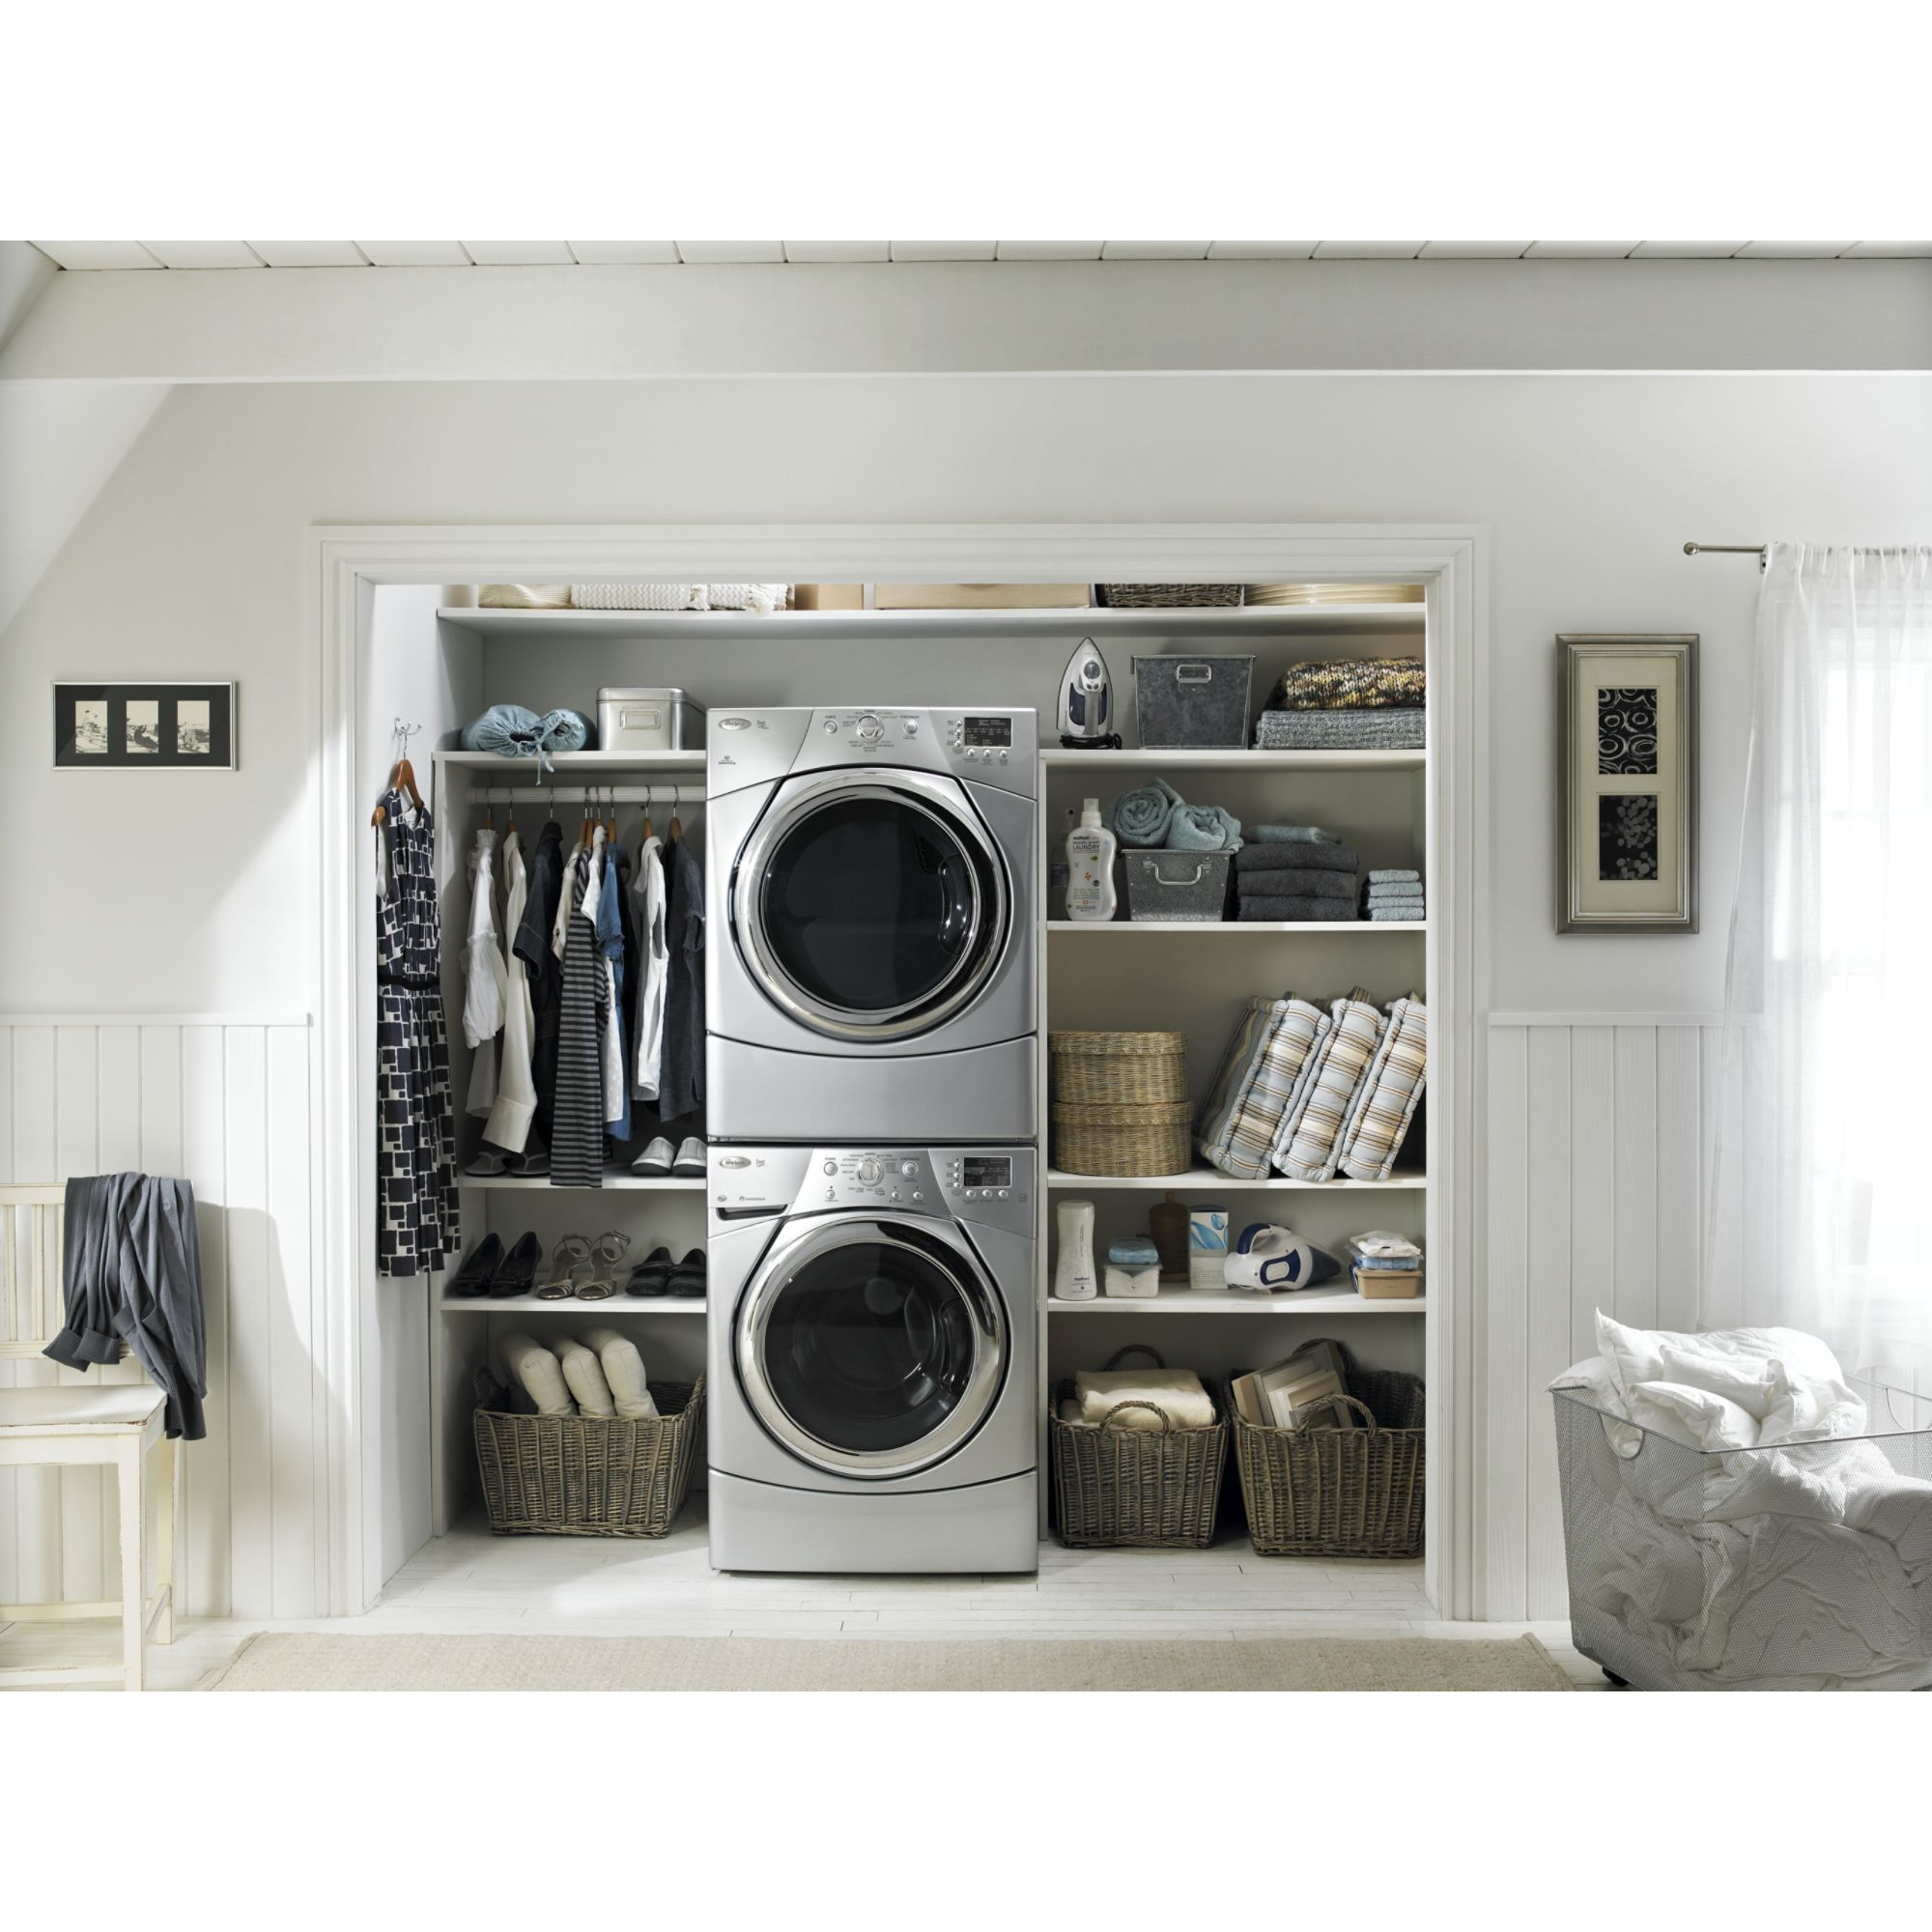 Whirlpool 3.5 cu. ft. Front-Load Washer w/ NSF® Certified Allergen Cycle